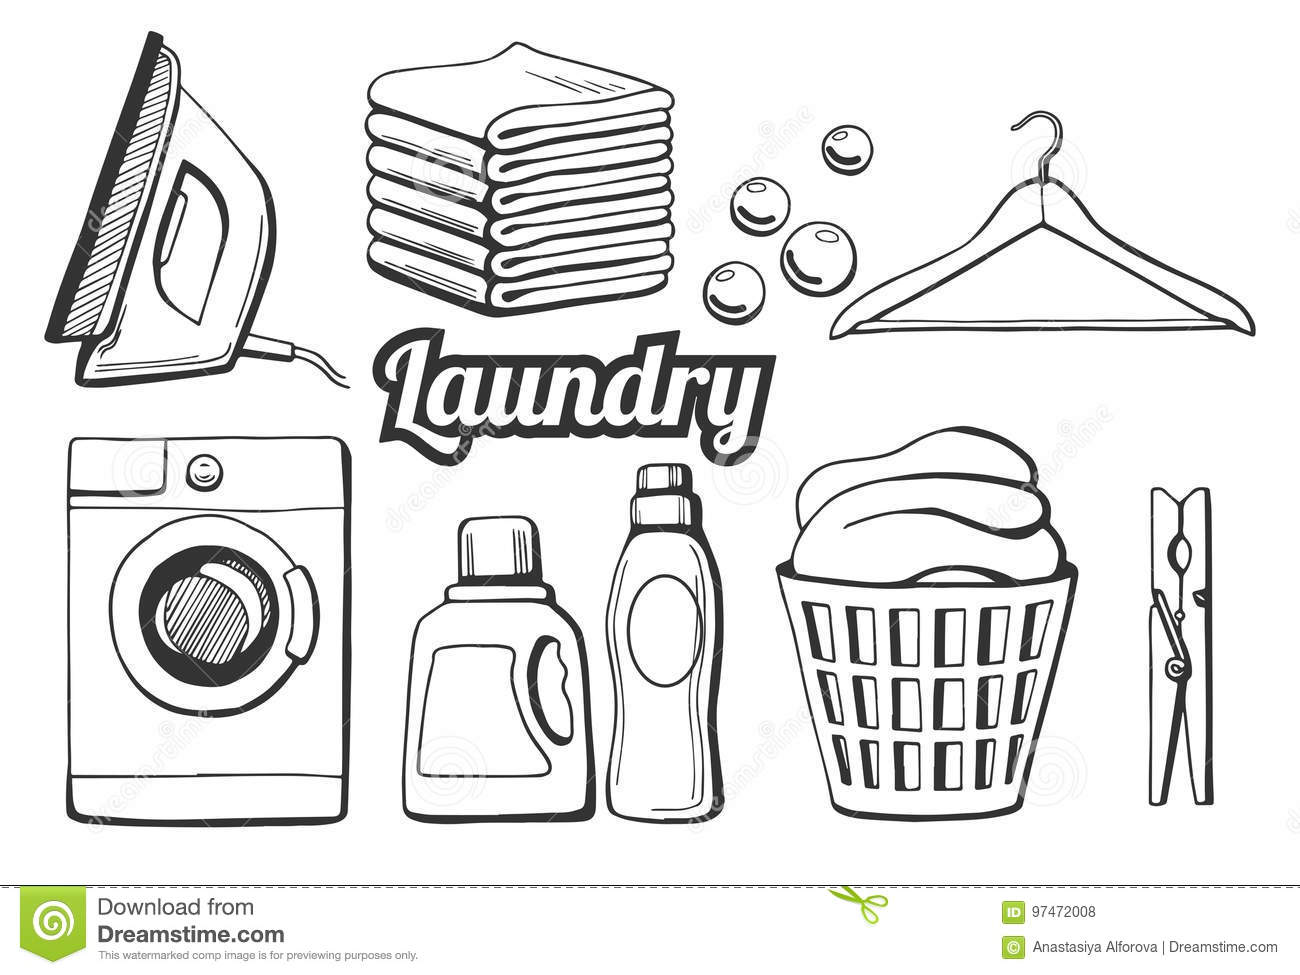 Laundry Cartoons, Illustrations & Vector Stock Images